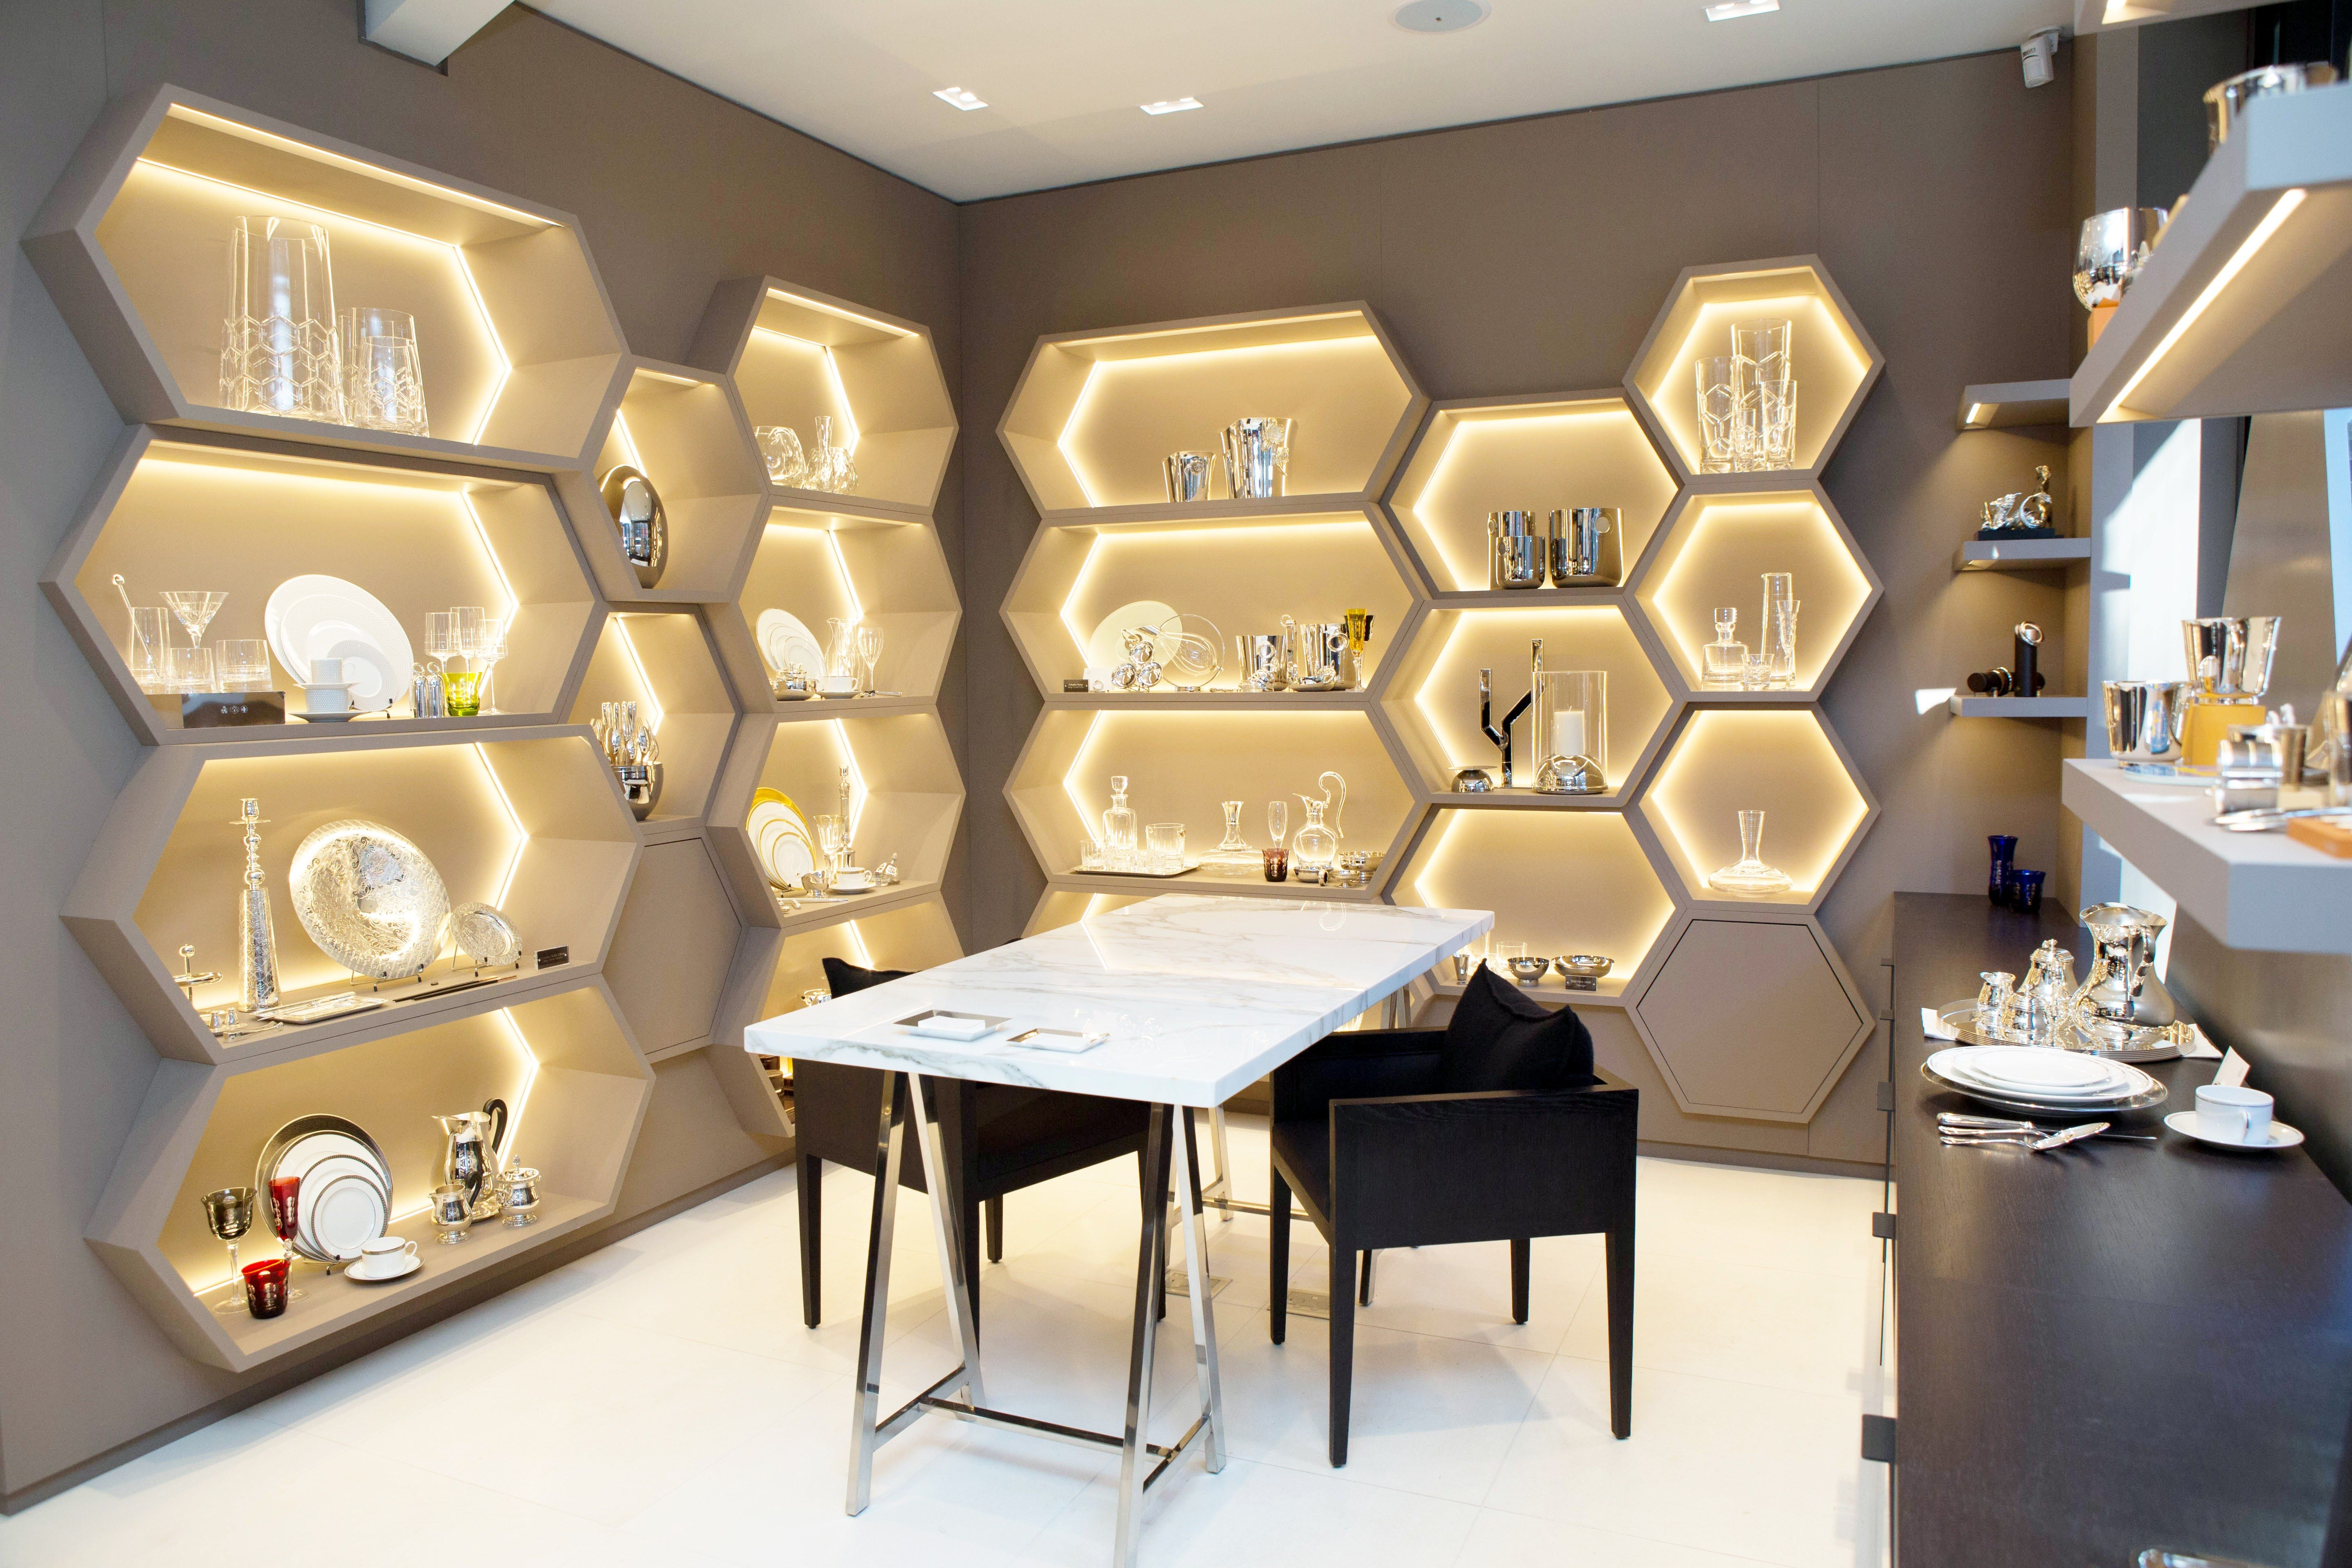 5 Stylish New Stores Open In New York With Images Jewelry